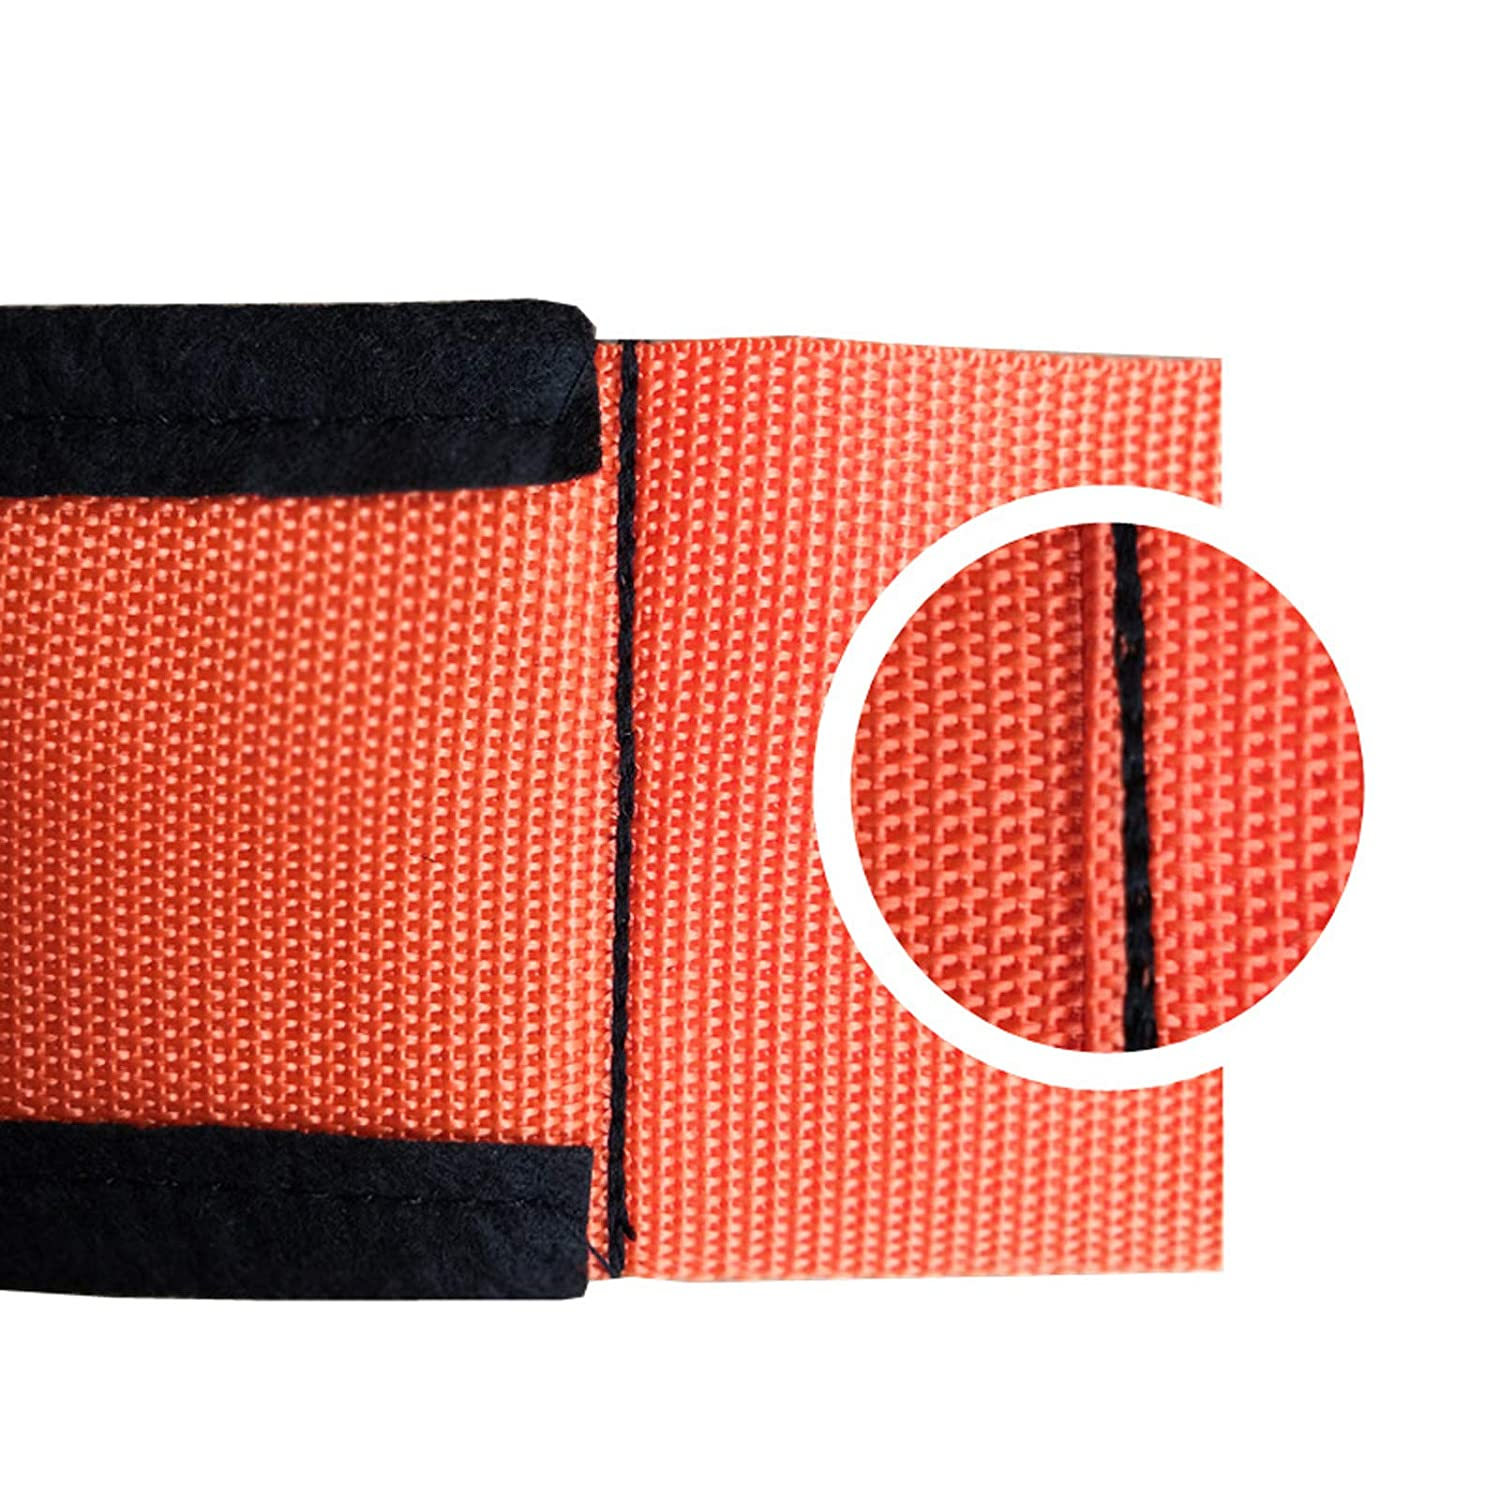 2-Person Lifting and Moving System Forearm Forklift Lifting Straps Furniture Moving Belt for Lifting Bulky Items Lifting and Moving Straps